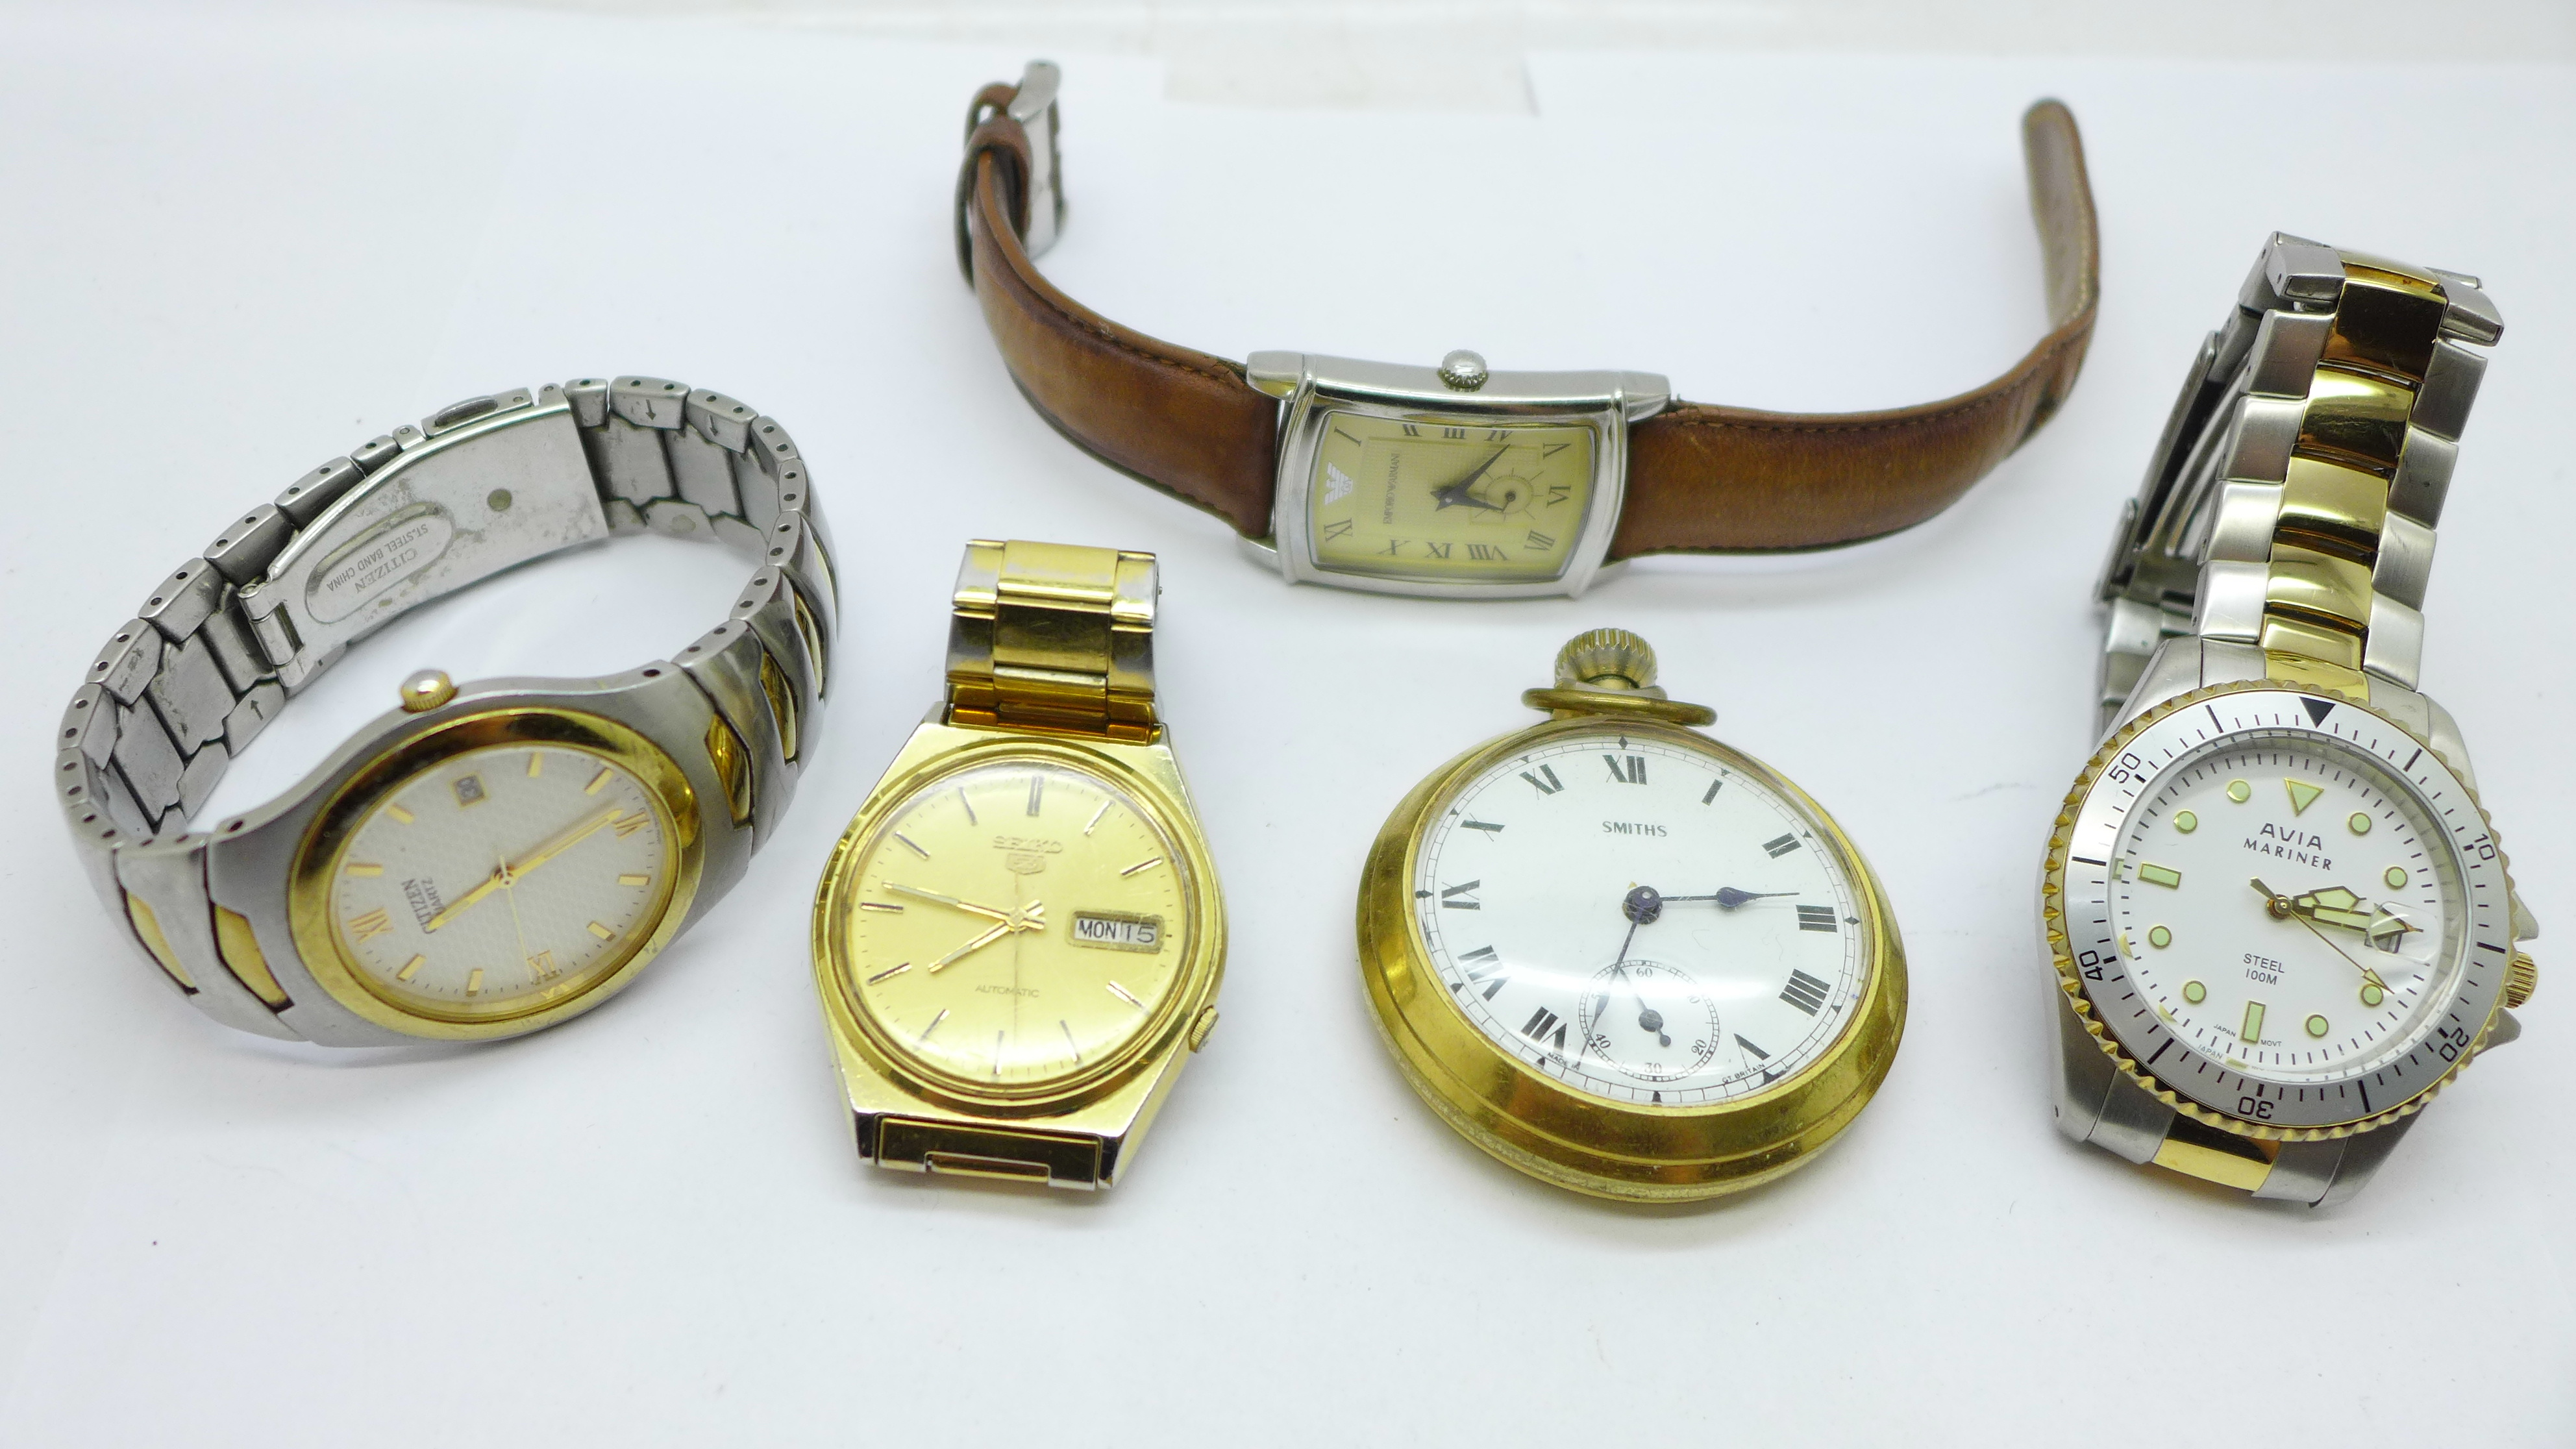 A collection of watches and a pocket watch including Seiko, Avia, Citizen, Emporio Armani and Smiths